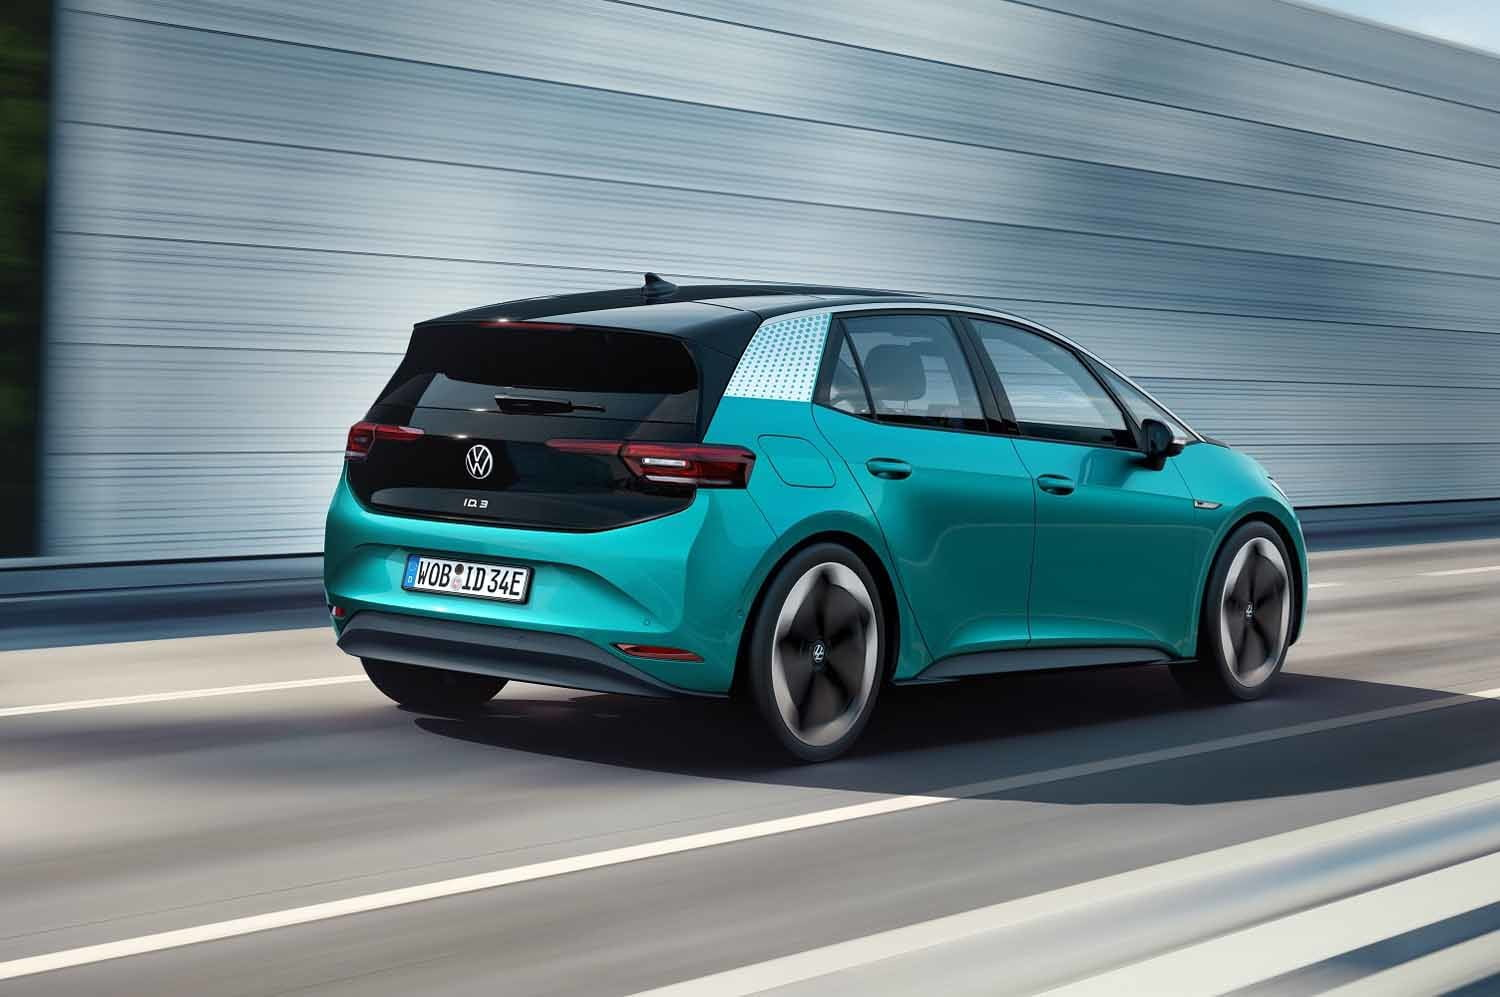 2020 volkswagen id 3 electric car orders open first edition detailed vw official